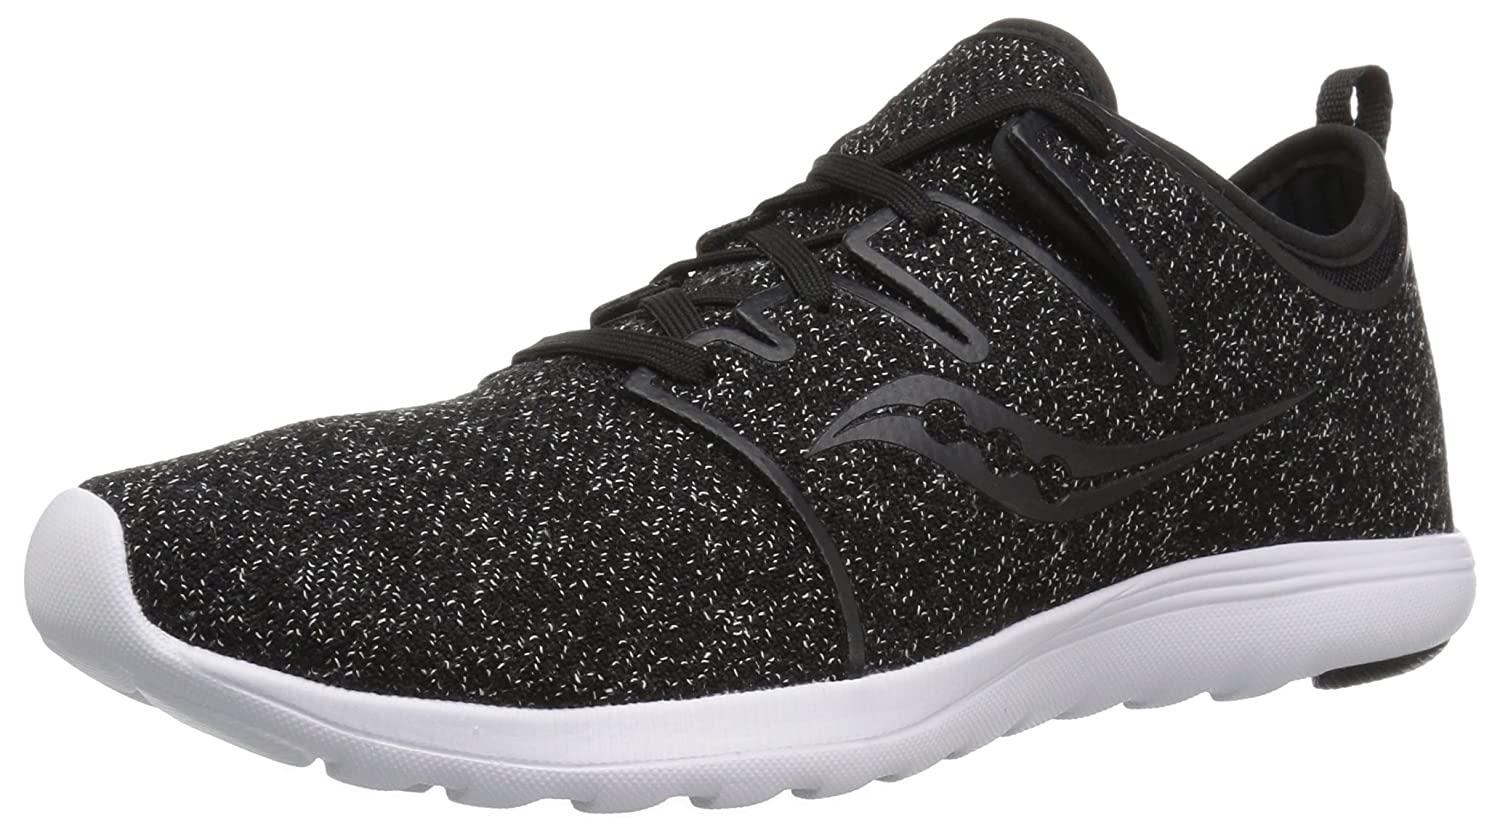 Saucony Women's Eros Lace Sneaker B077Y28WYW 12 M US|Black/Speckled